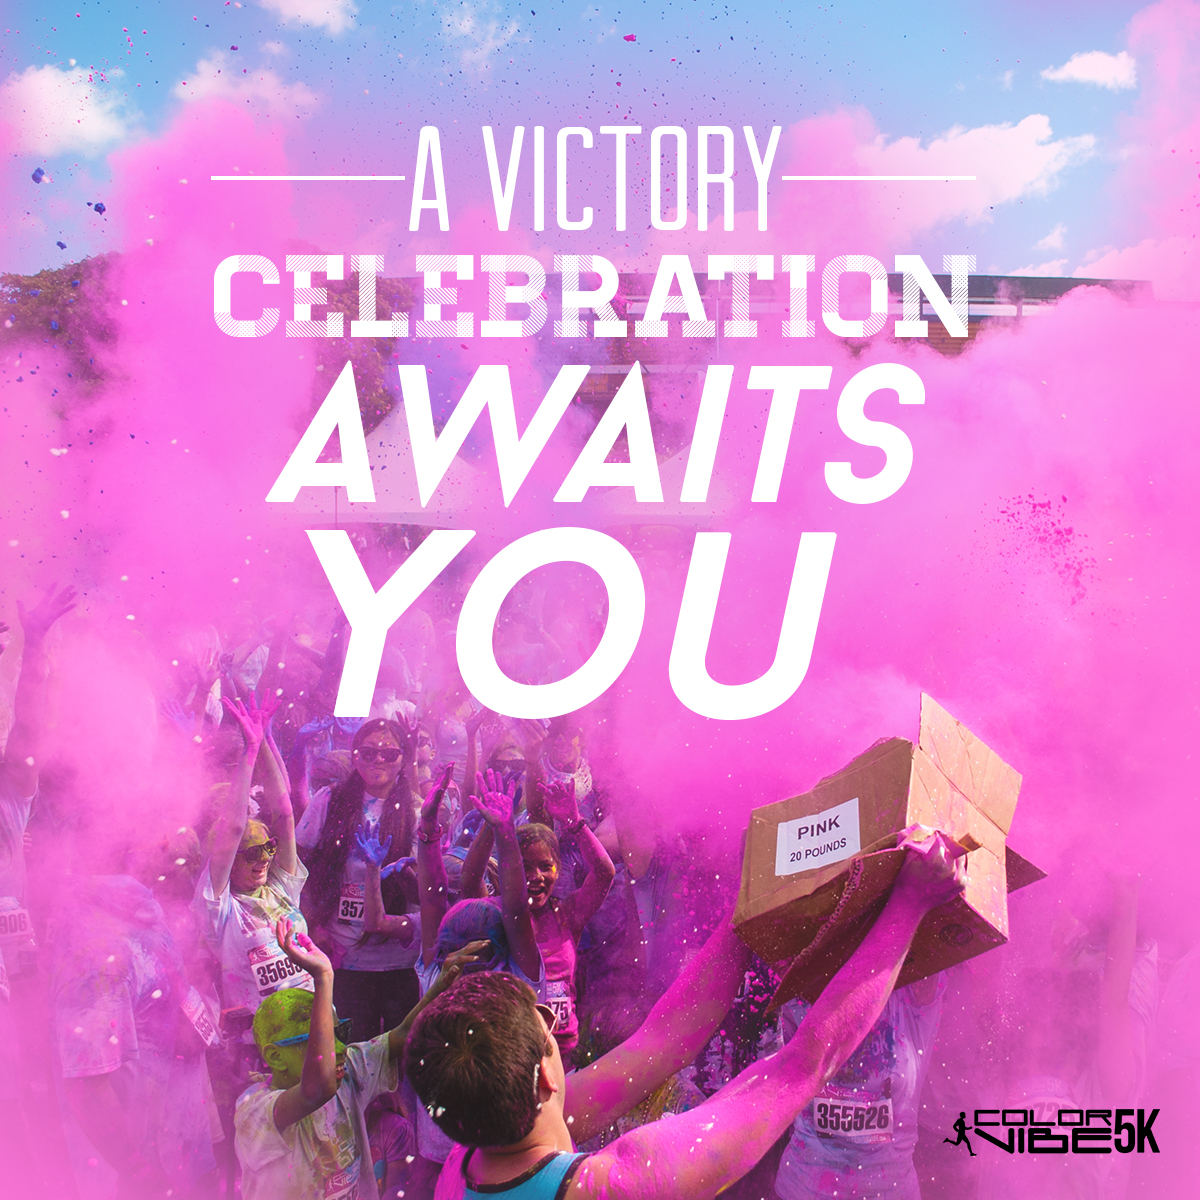 A Victory Celebration Awaits You